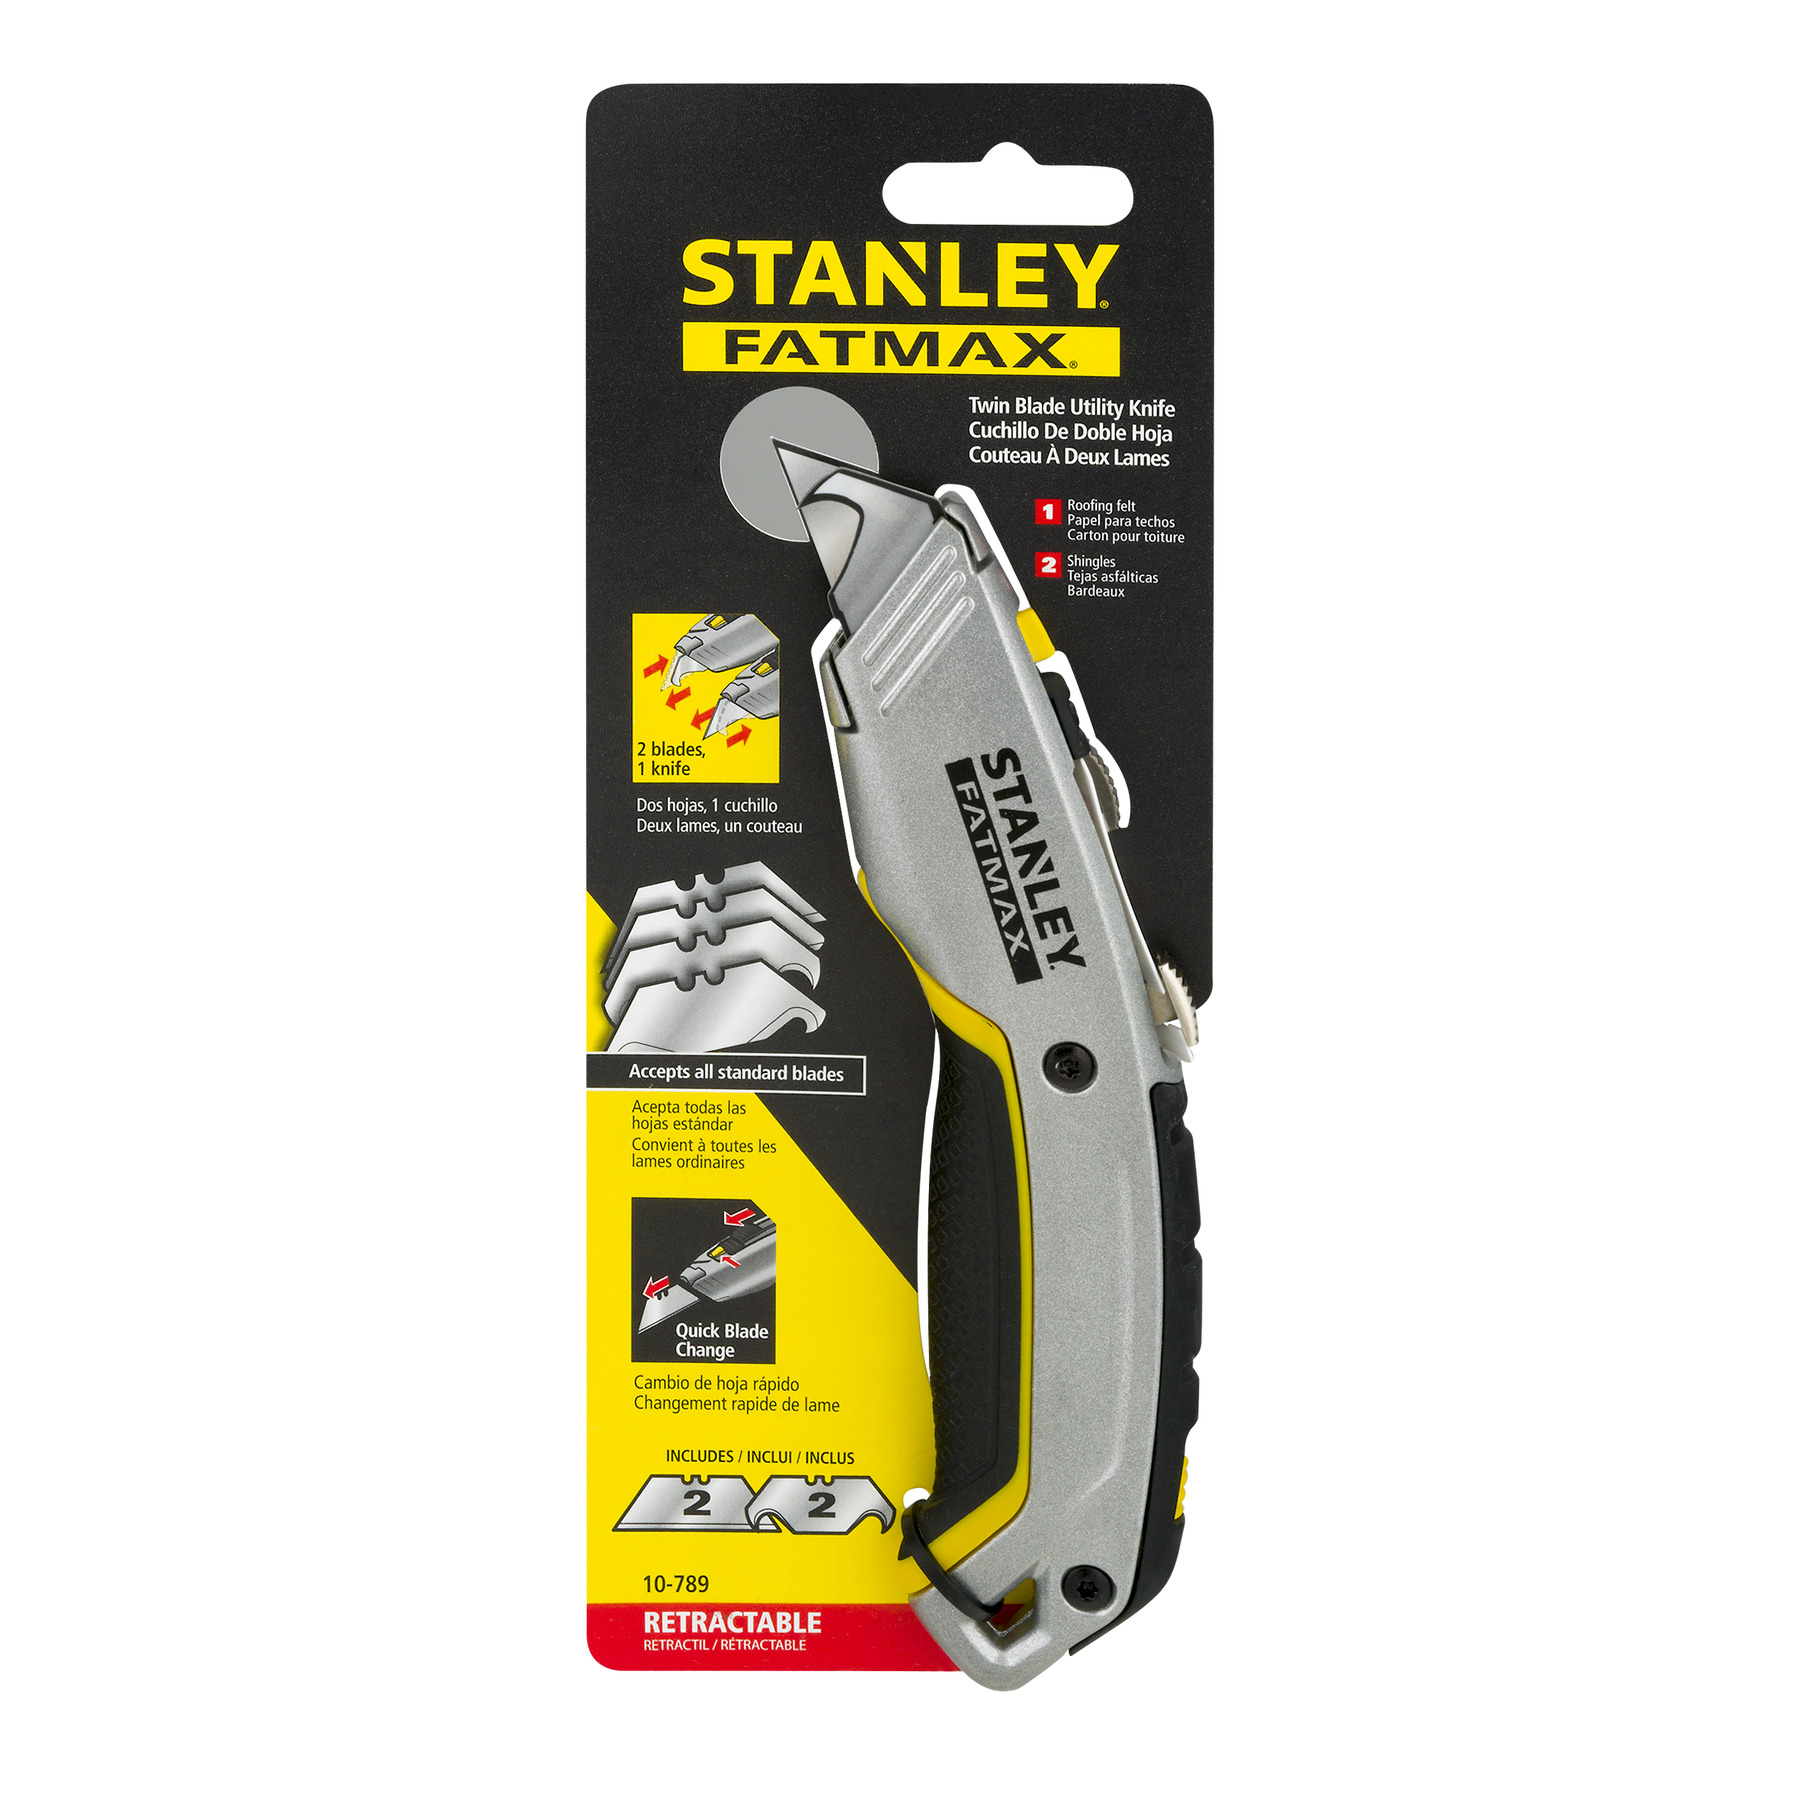 Stanley FatMax Twin Blade Utility Knife, 1.0 CT